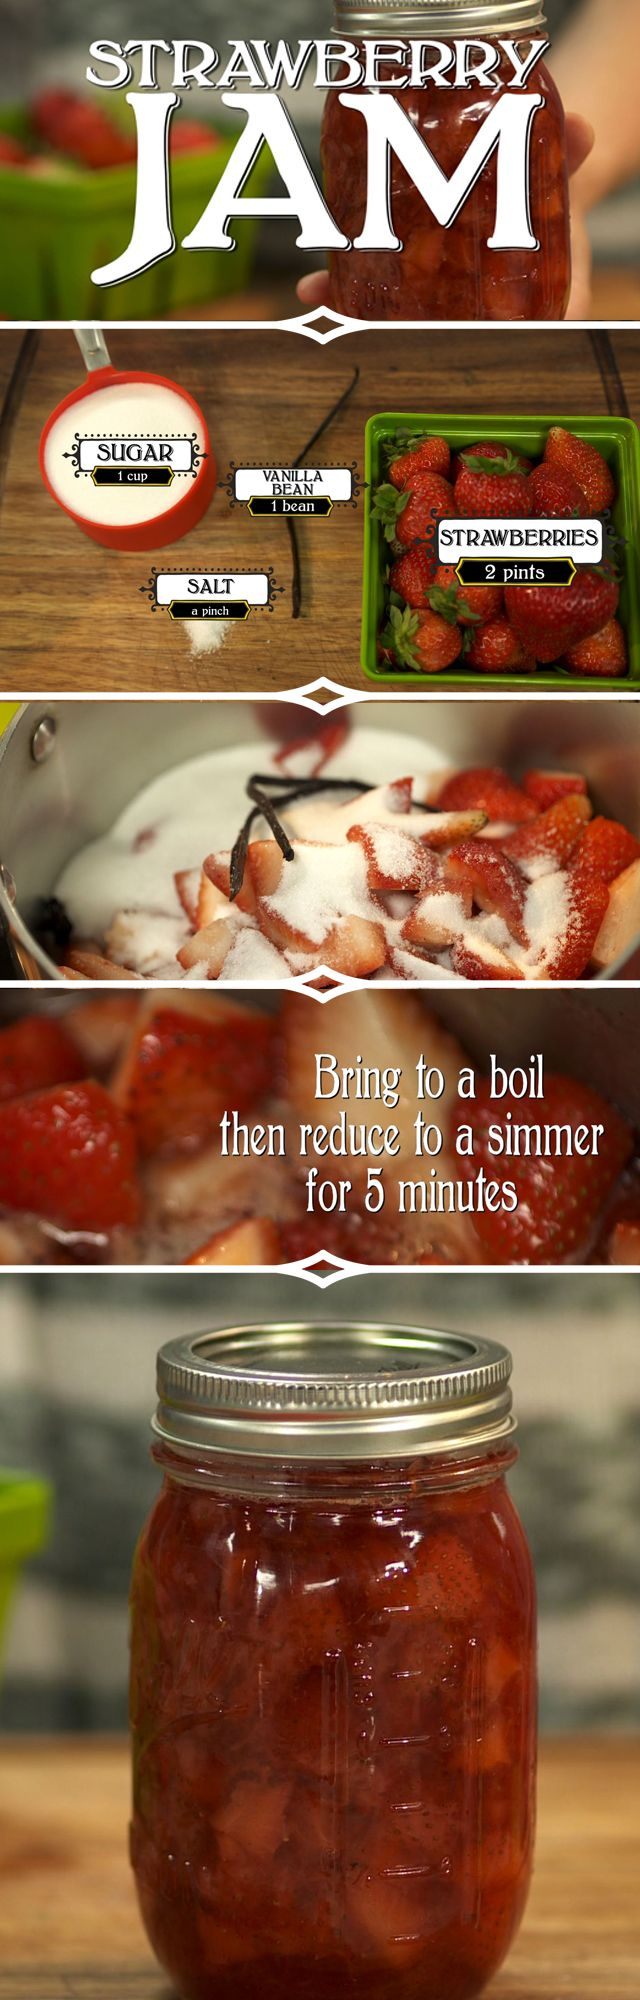 Make your own sweet strawberry jam.